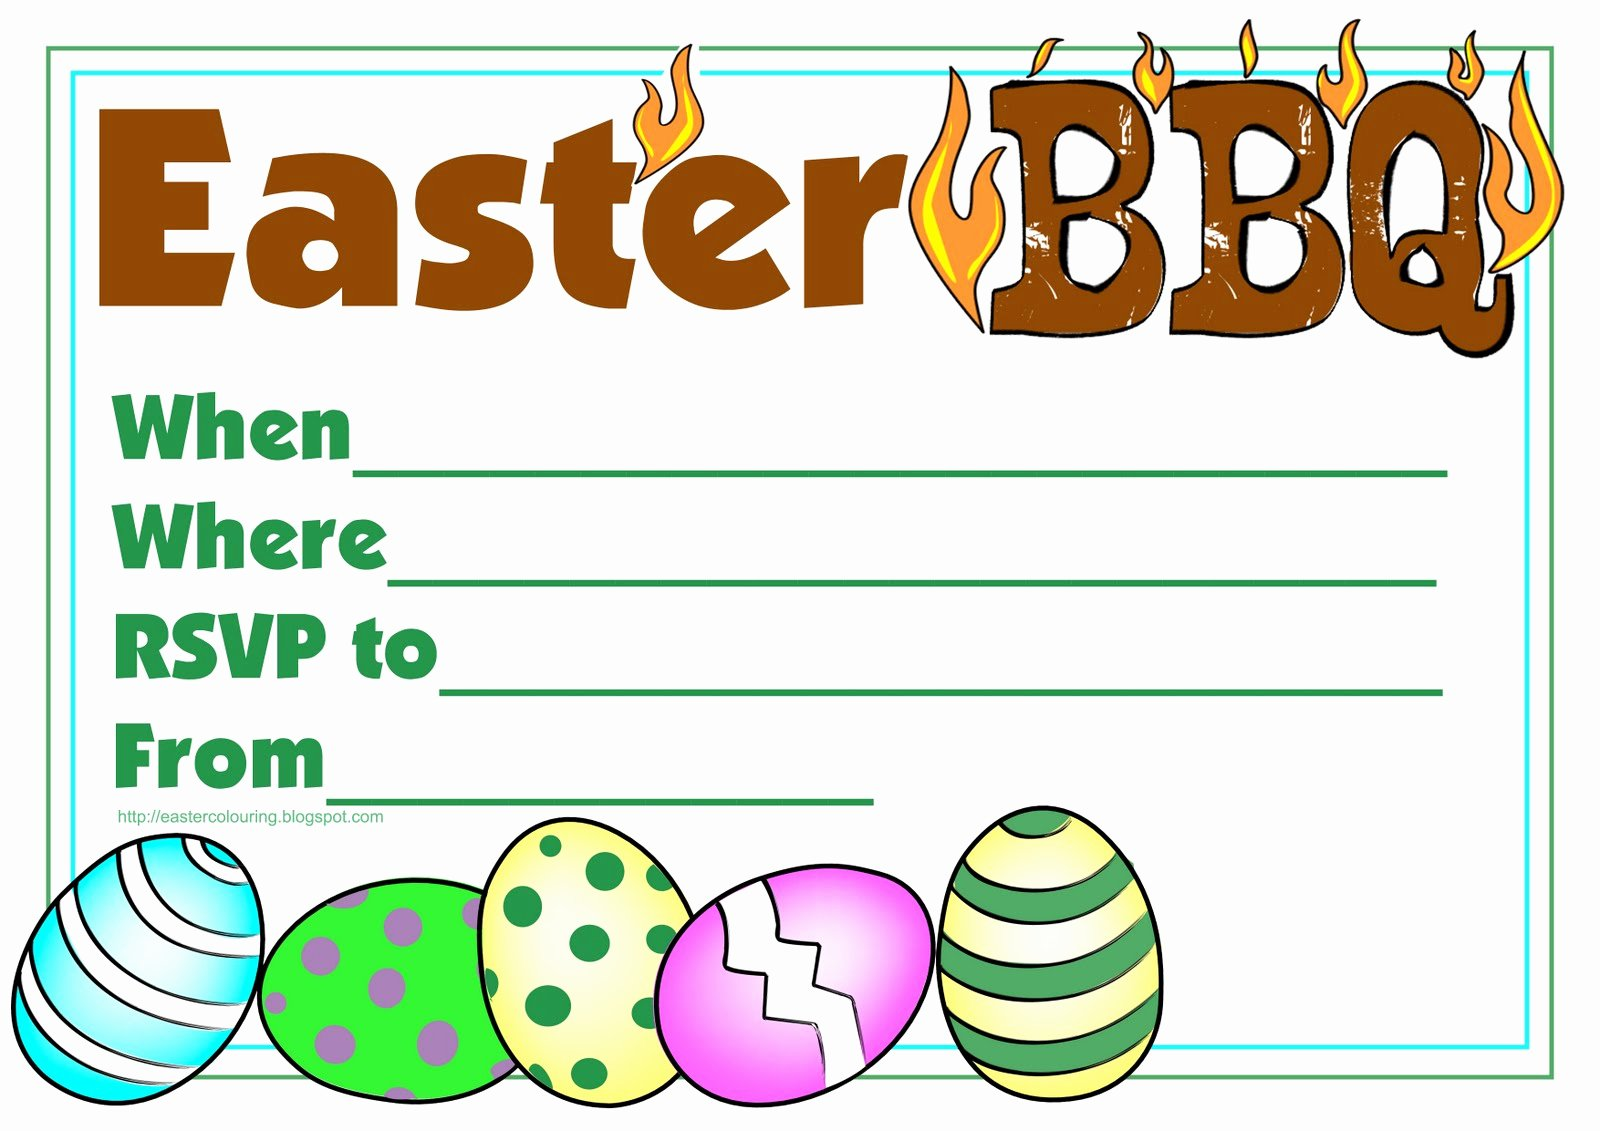 Free Printable Bbq Invitations Beautiful Easter Colouring Easter Barbecue Invitation Free and Printable